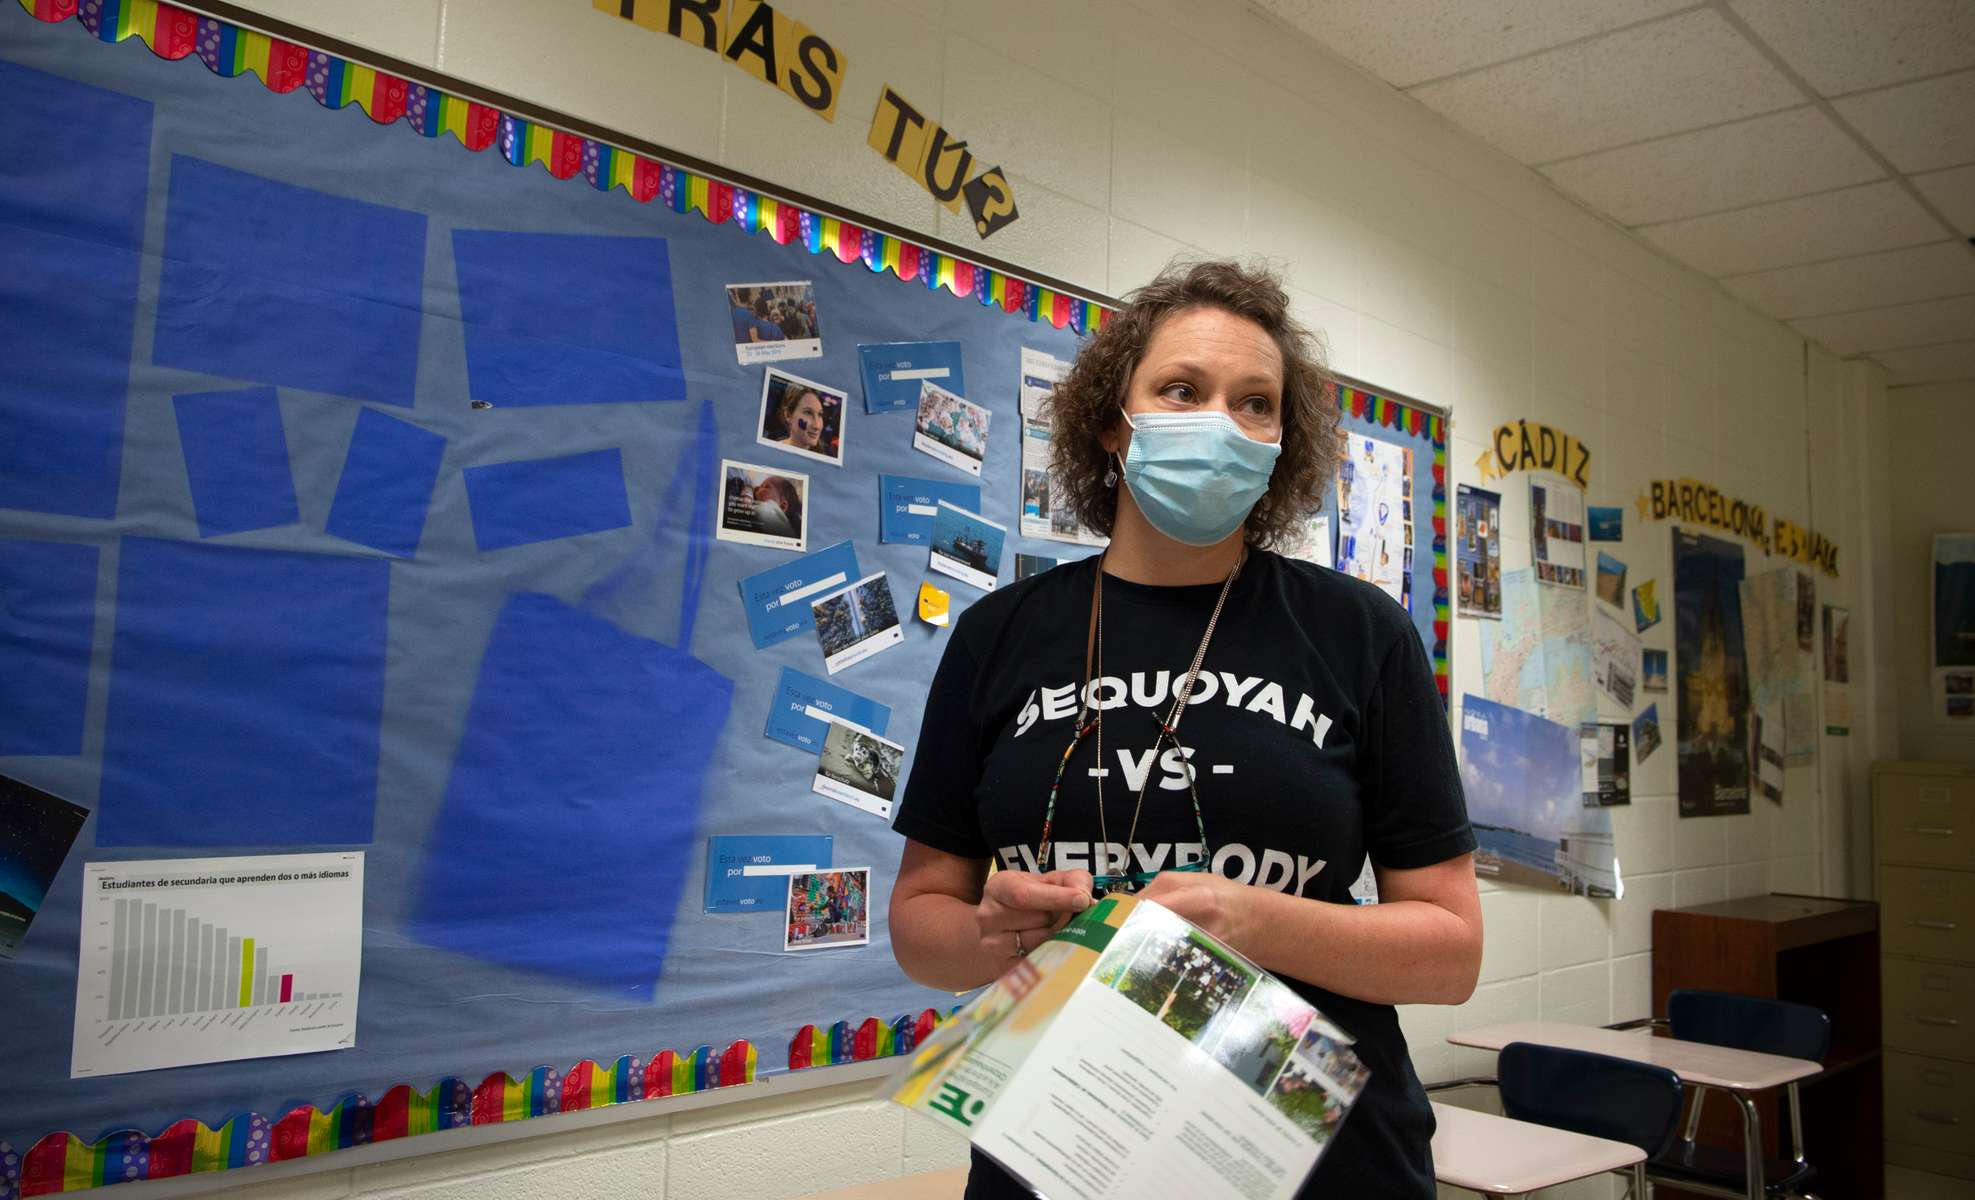 """Allison Webb, 44, a Spanish and French teacher at Sequoyah High School, packs her personal items and dismantles her classroom's displays as she ends her decades-long teaching career. I feel betrayed,"""" she said. Webb resigned after the county school administrators failed to mandate protective masks for all students when in-person classes resume in August. """"I can't risk my health, and that of my family. Students and staff will get sick, it's happened in other school districts,"""" she said. """"The administration just seems not to care. We're expendable, just cogs in the system,"""" she said. Webb resigned last week, and said there are more resignations coming. The county school system is the only one in metro Atlanta with in-person classes scheduled when school resumes. Surrounding counties have either all-virtual classes or a mix of e-learning and in-person classes, she said."""